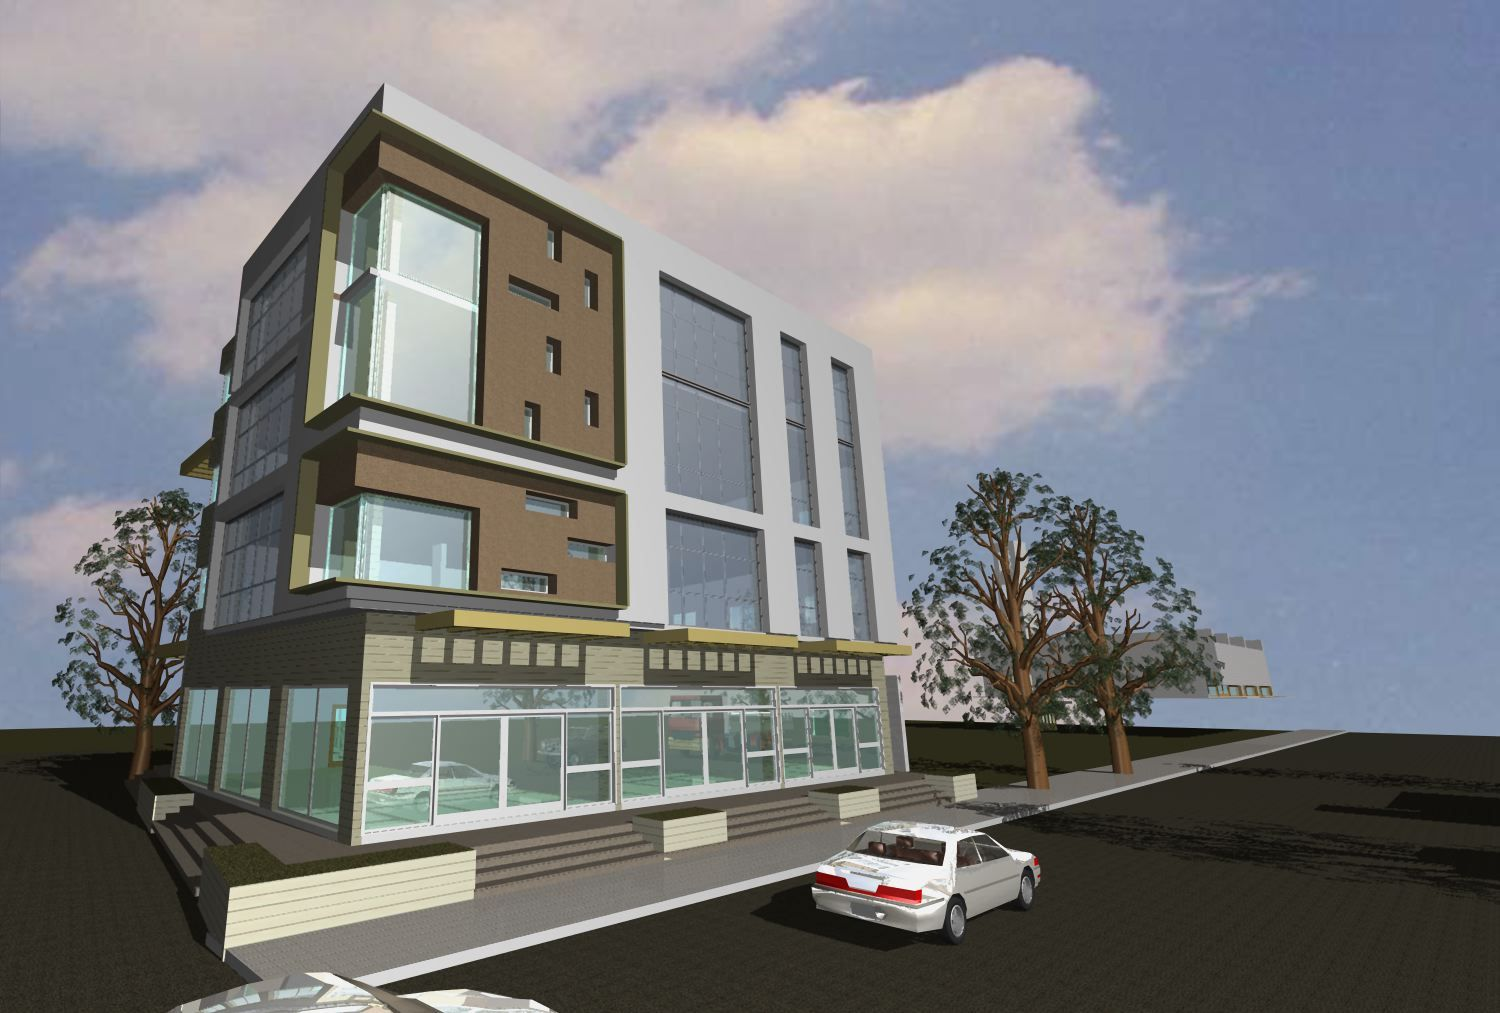 Commercial Building Design and Construction Consulting